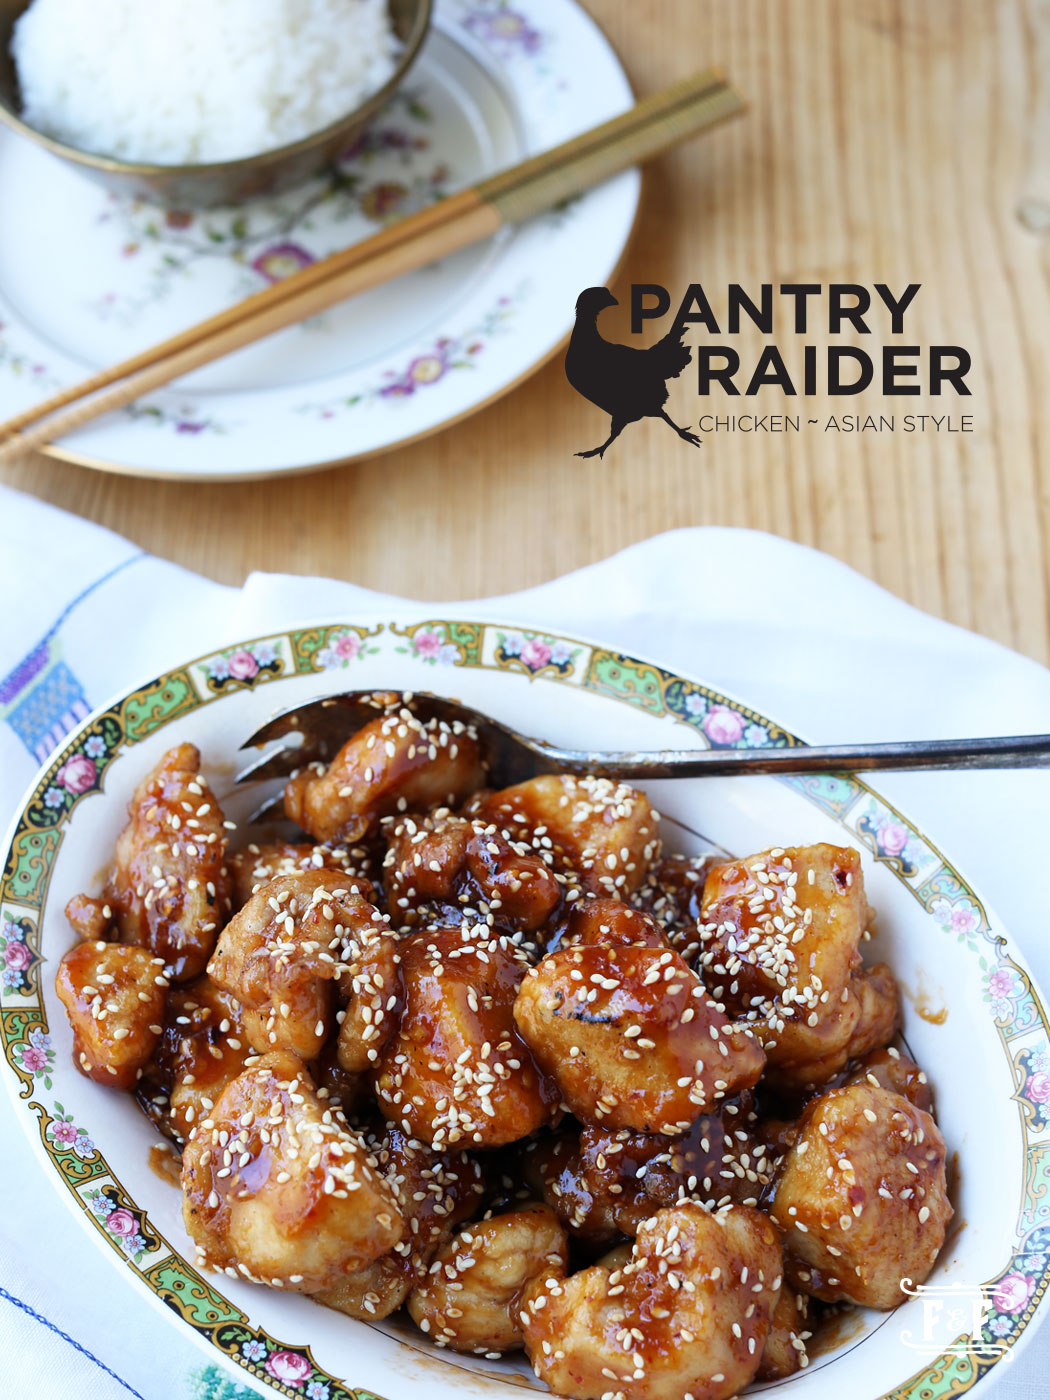 Pantry Raider Chicken Asian Style